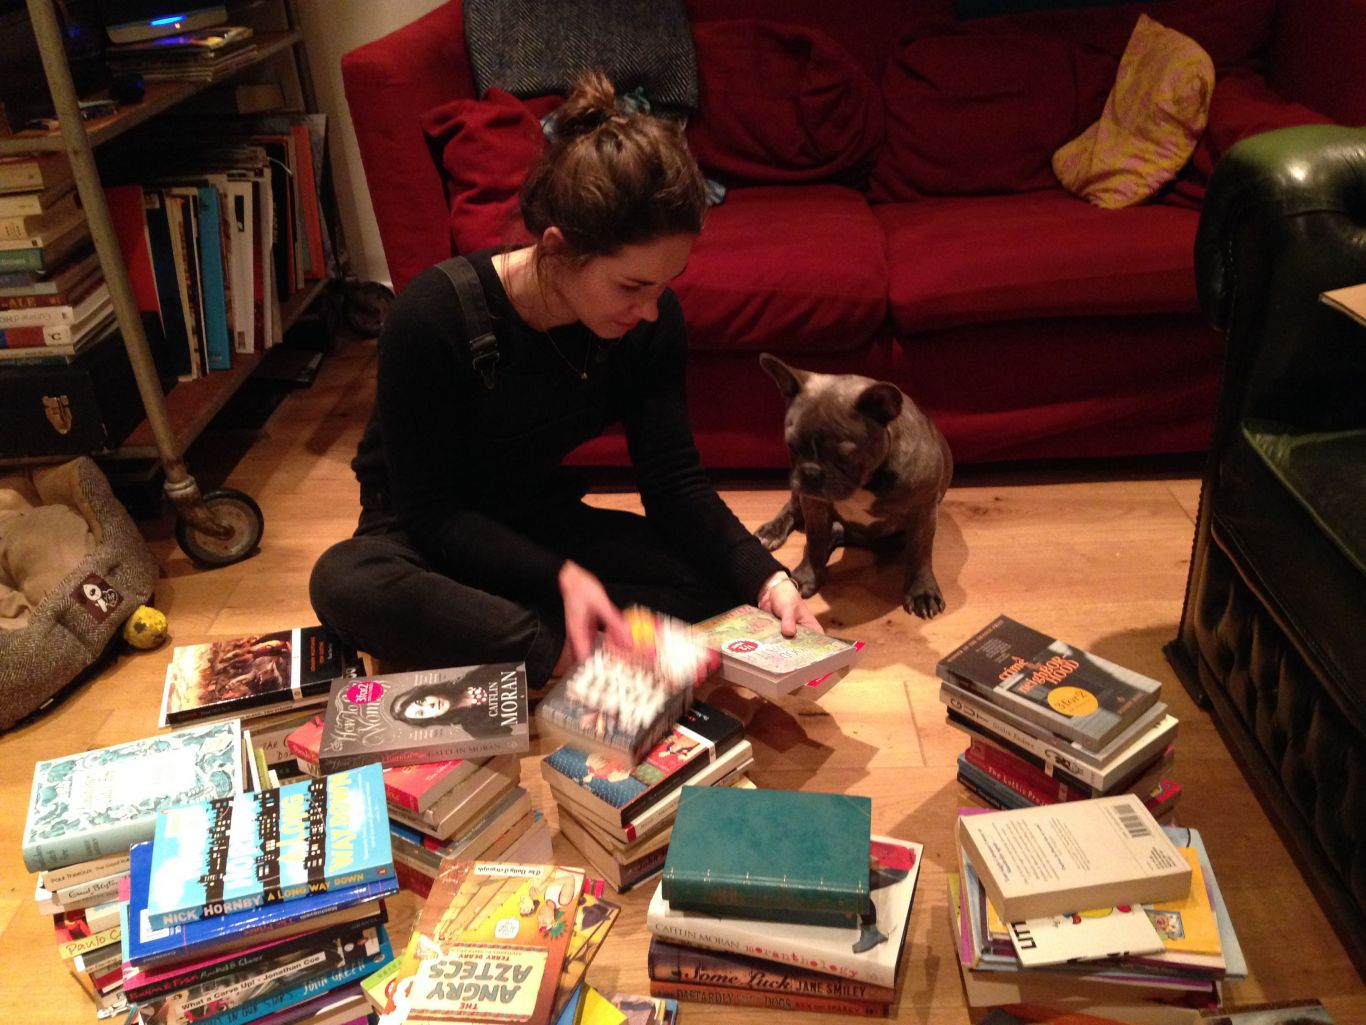 Aimée sitting with her dog looking through books to sell in Phlox Books